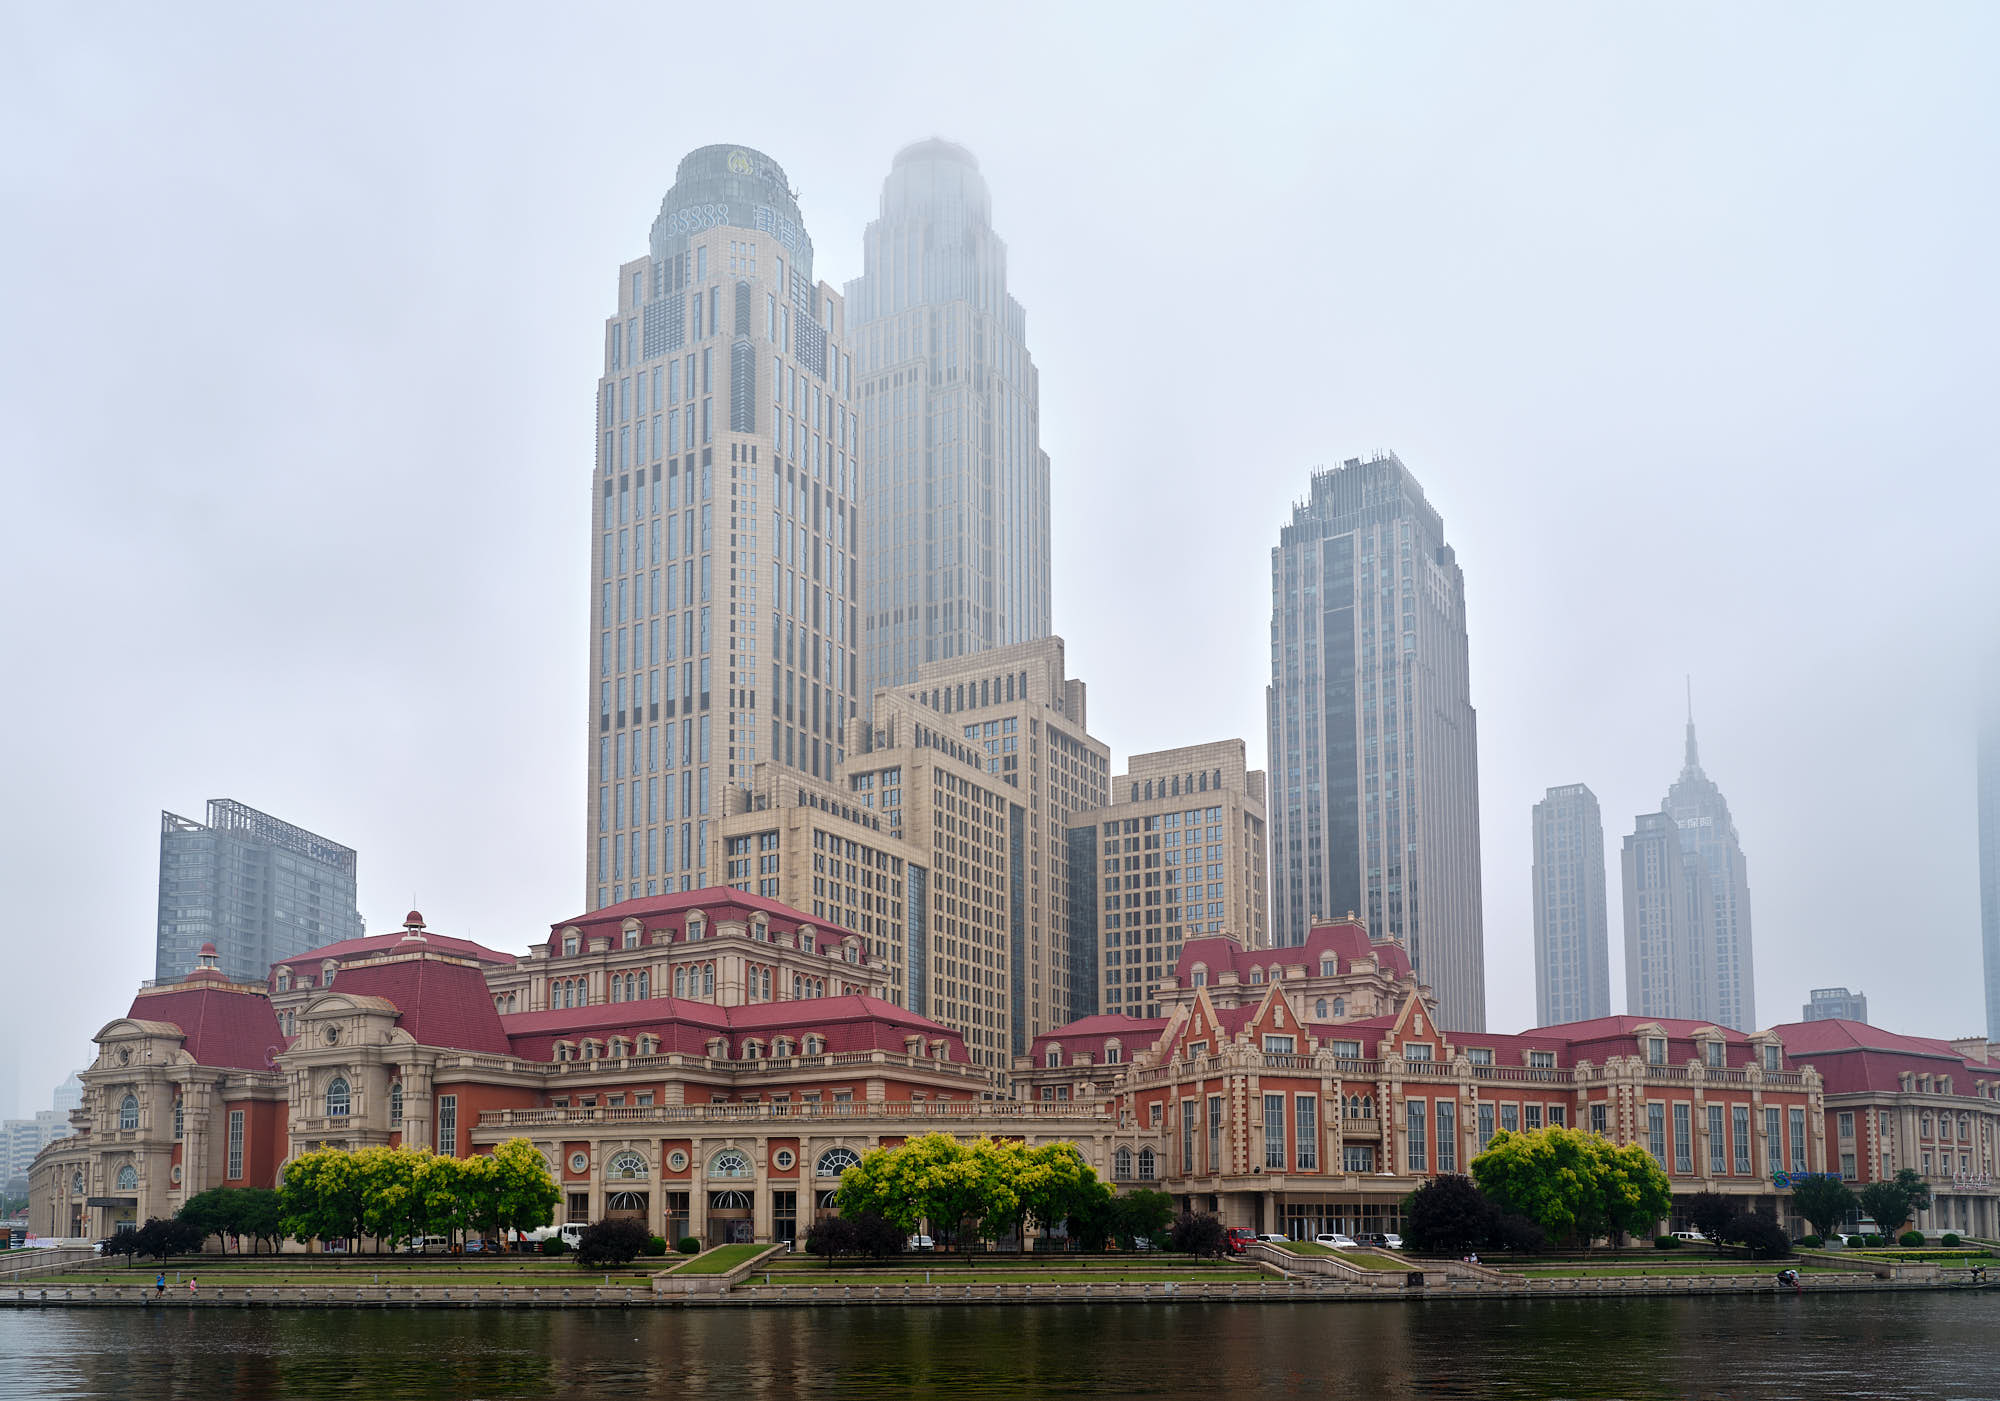 Haihe River architecture in Tianjin, China